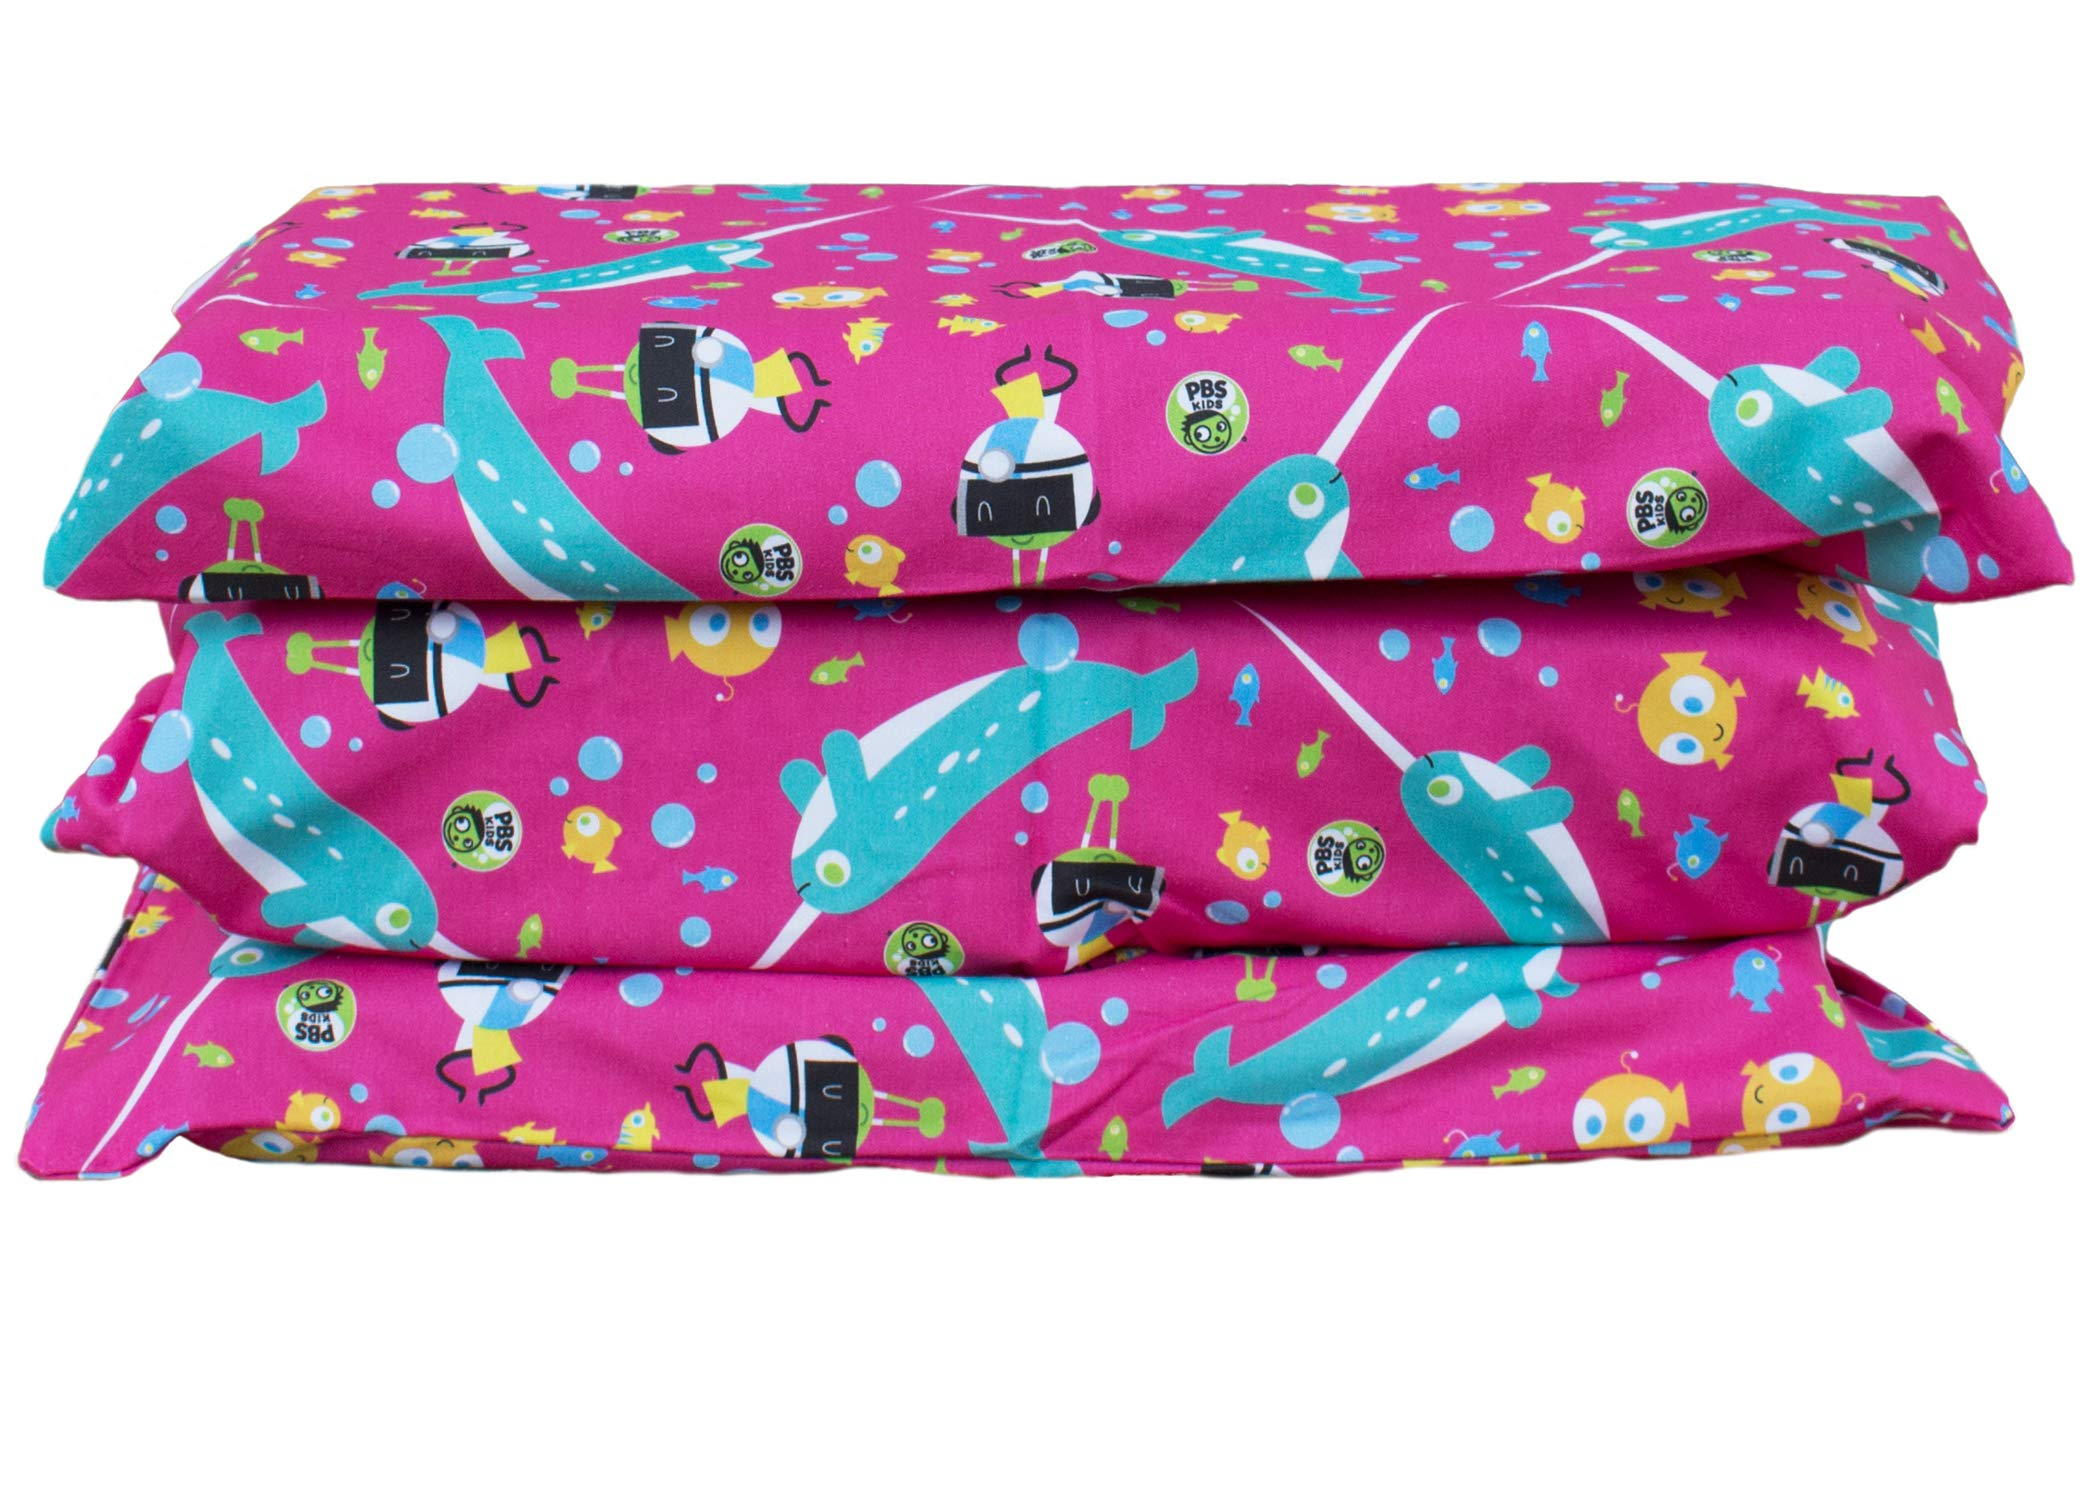 KinderMat PBS Kids Cover, Pillowcase Style Full Sheet, Fits Rest Mats Roughly 19 x 45 Inches, Narwhal Expedition, Pink